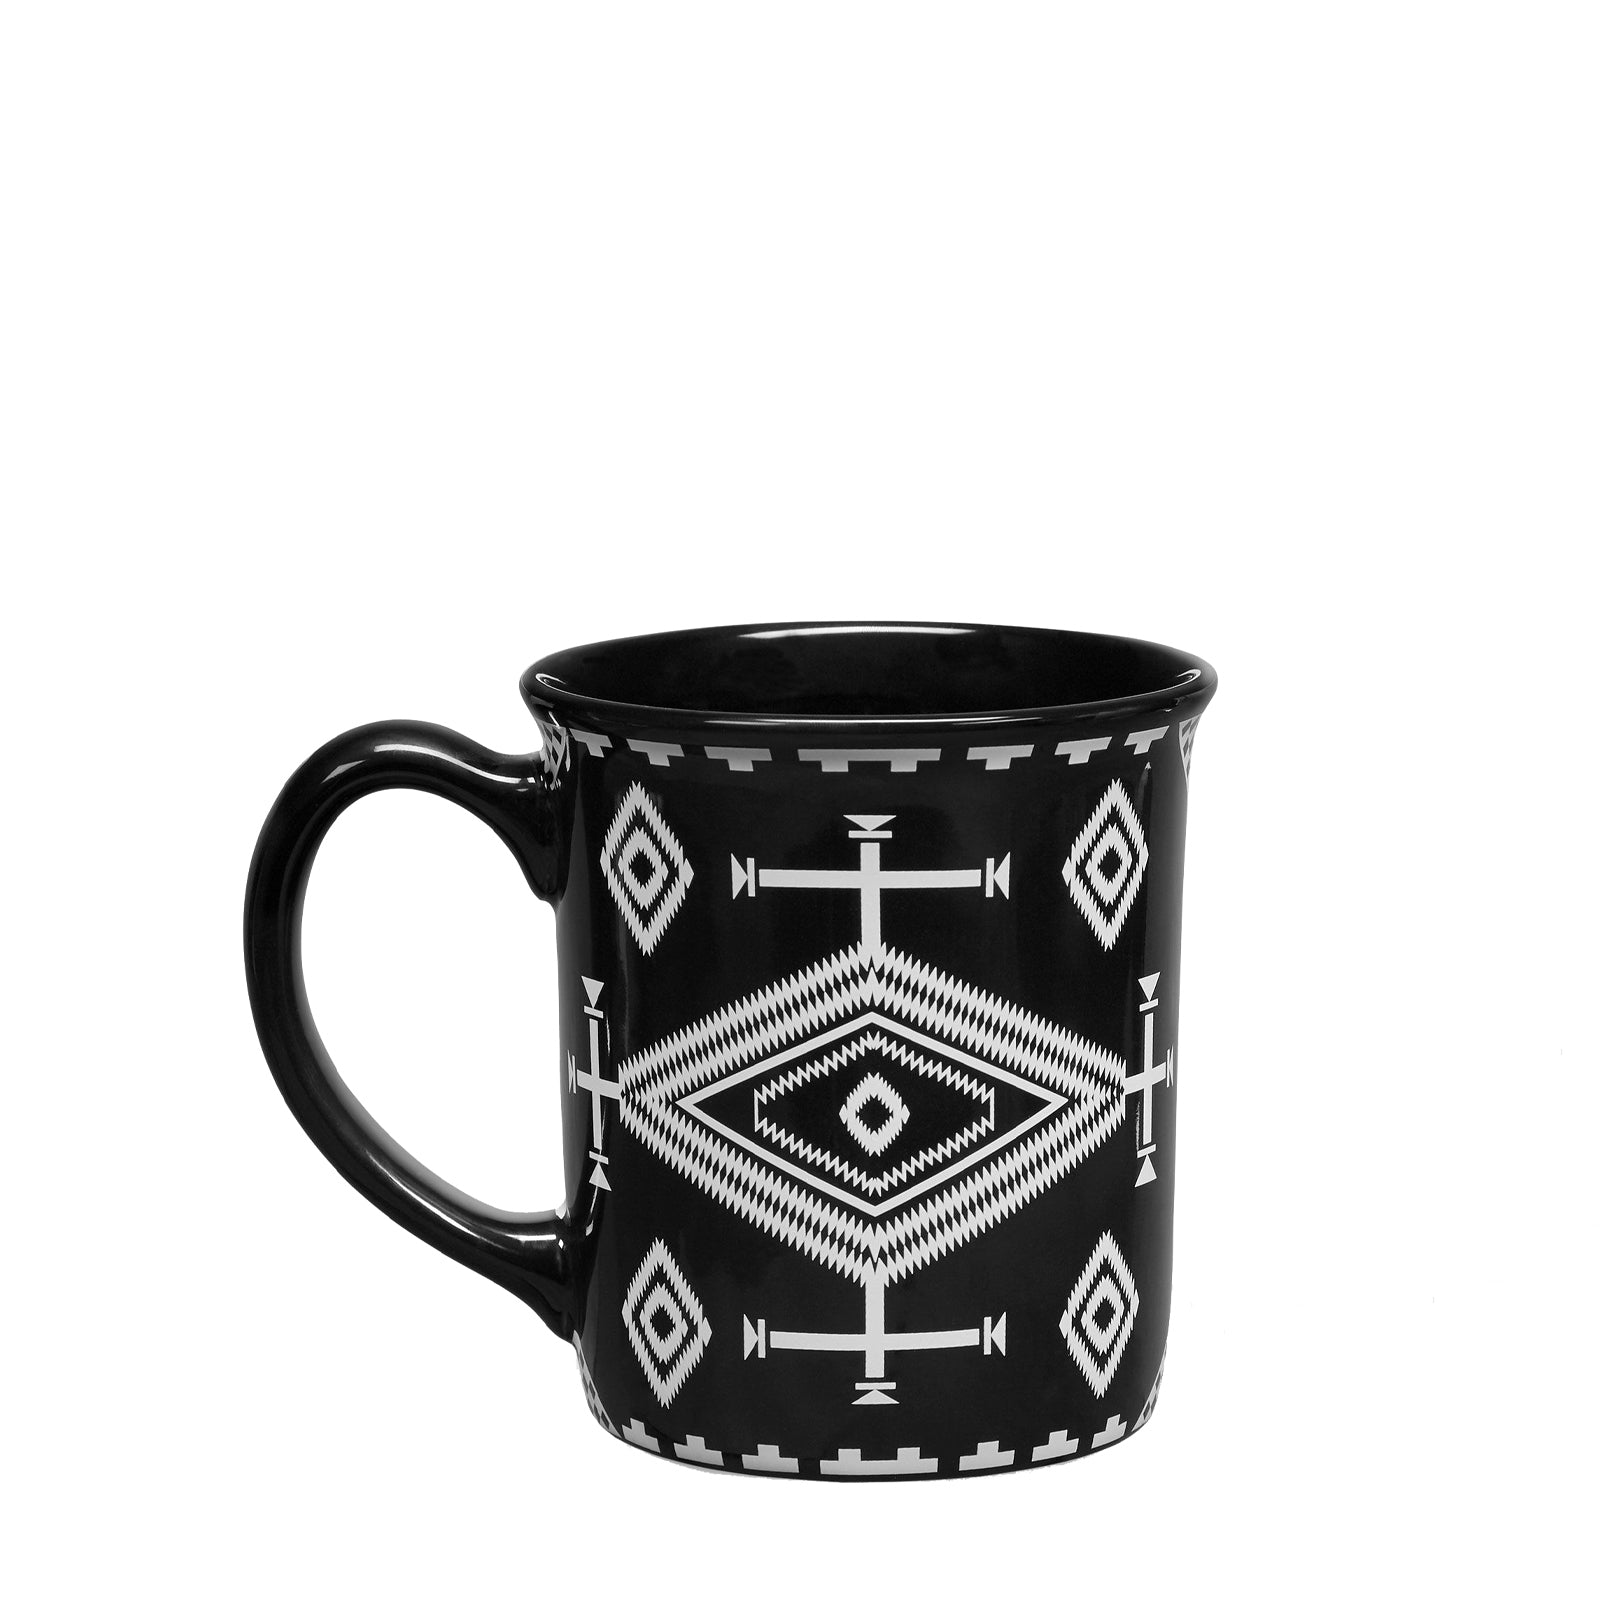 18 oz Ceramic Mug in Los Ojos Black